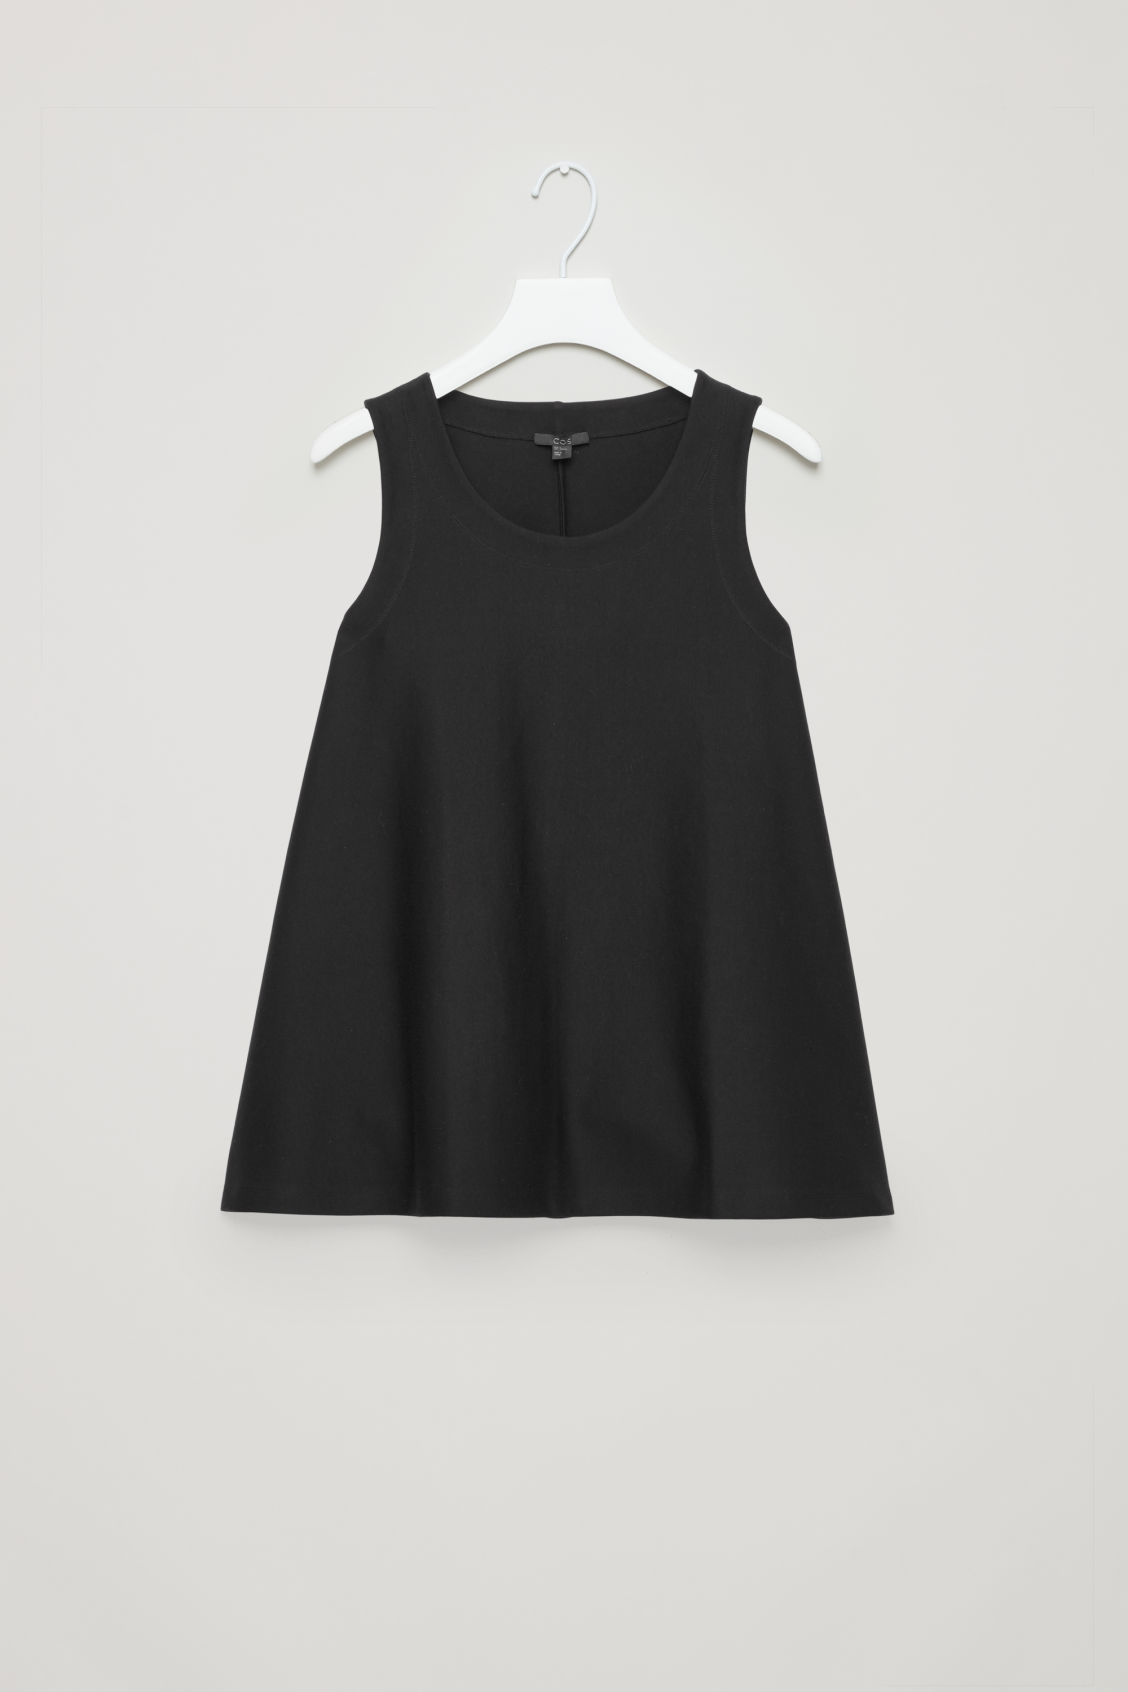 A-Line Cotton Vest Top, Black from COS